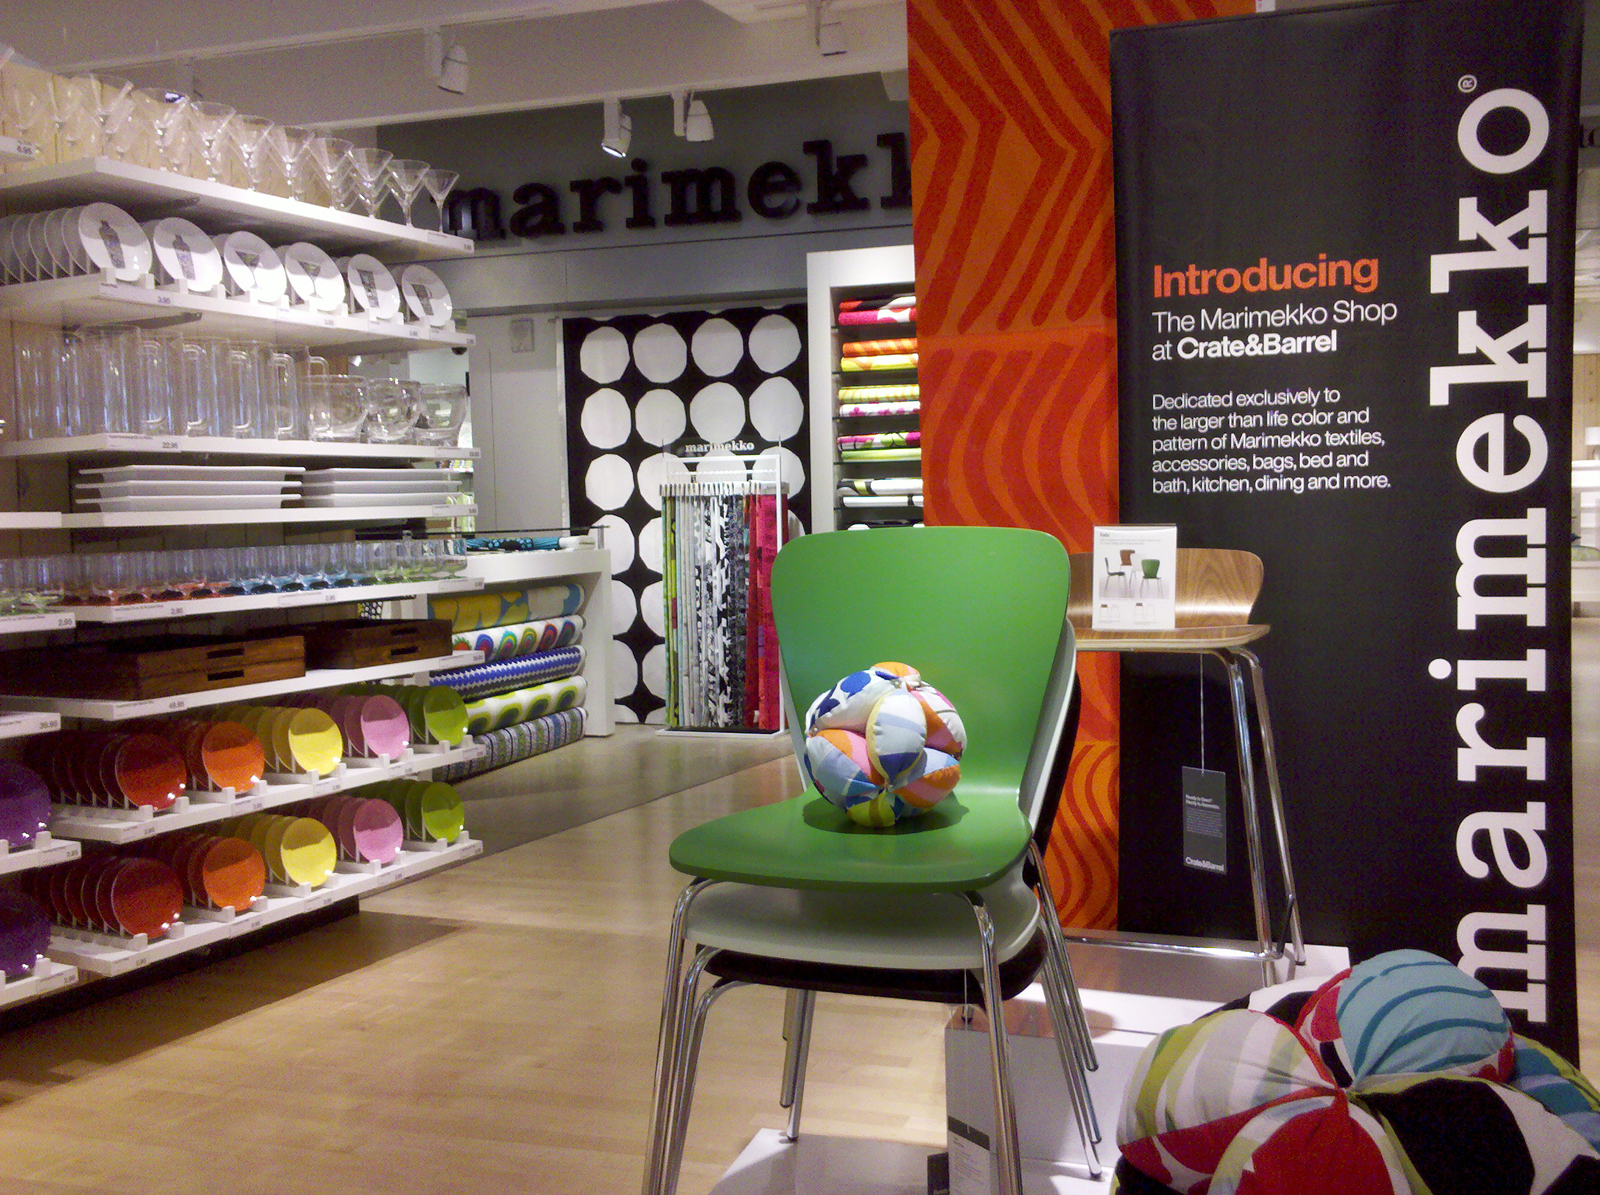 The new shops feature an array of Crate & Barrel-exclusive bedding and bathroom products made with Marimekko textiles as well as fabrics by the yard and other products by the Finnish design company.